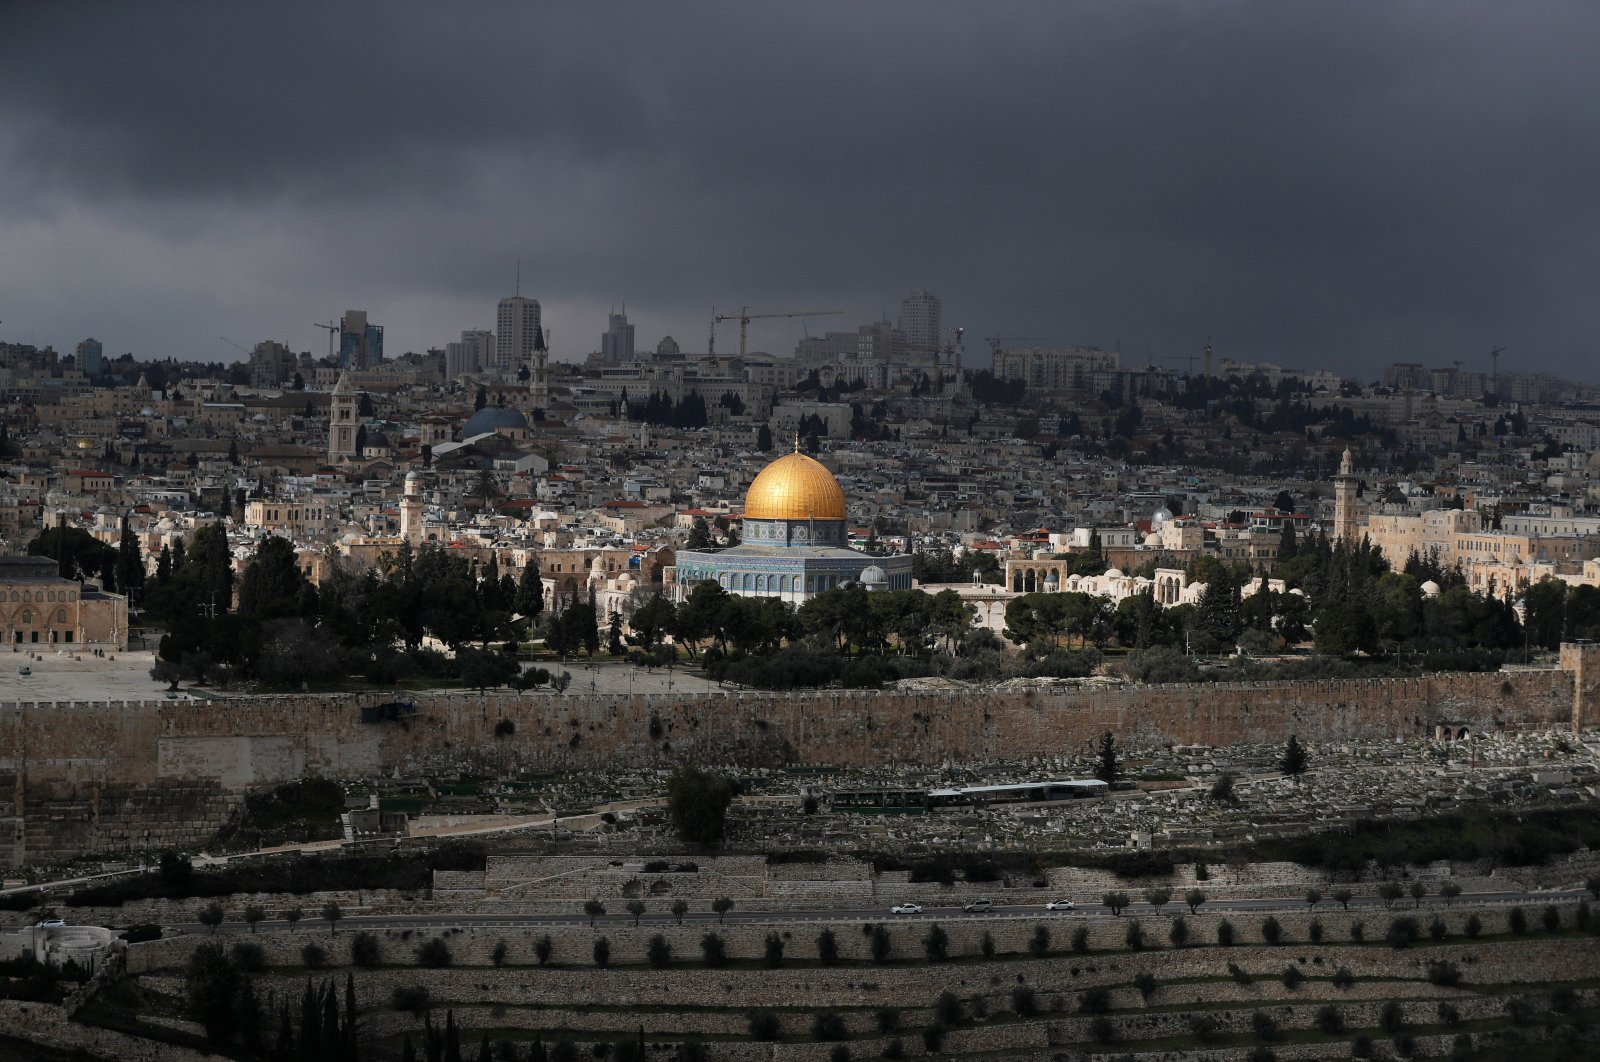 The Dome of the Rock in the compound known to Jews as Temple Mount and to Palestinians as Noble Sanctuary in Jerusalem's Old City, Jan. 29, 2020. (Reuters Photo)